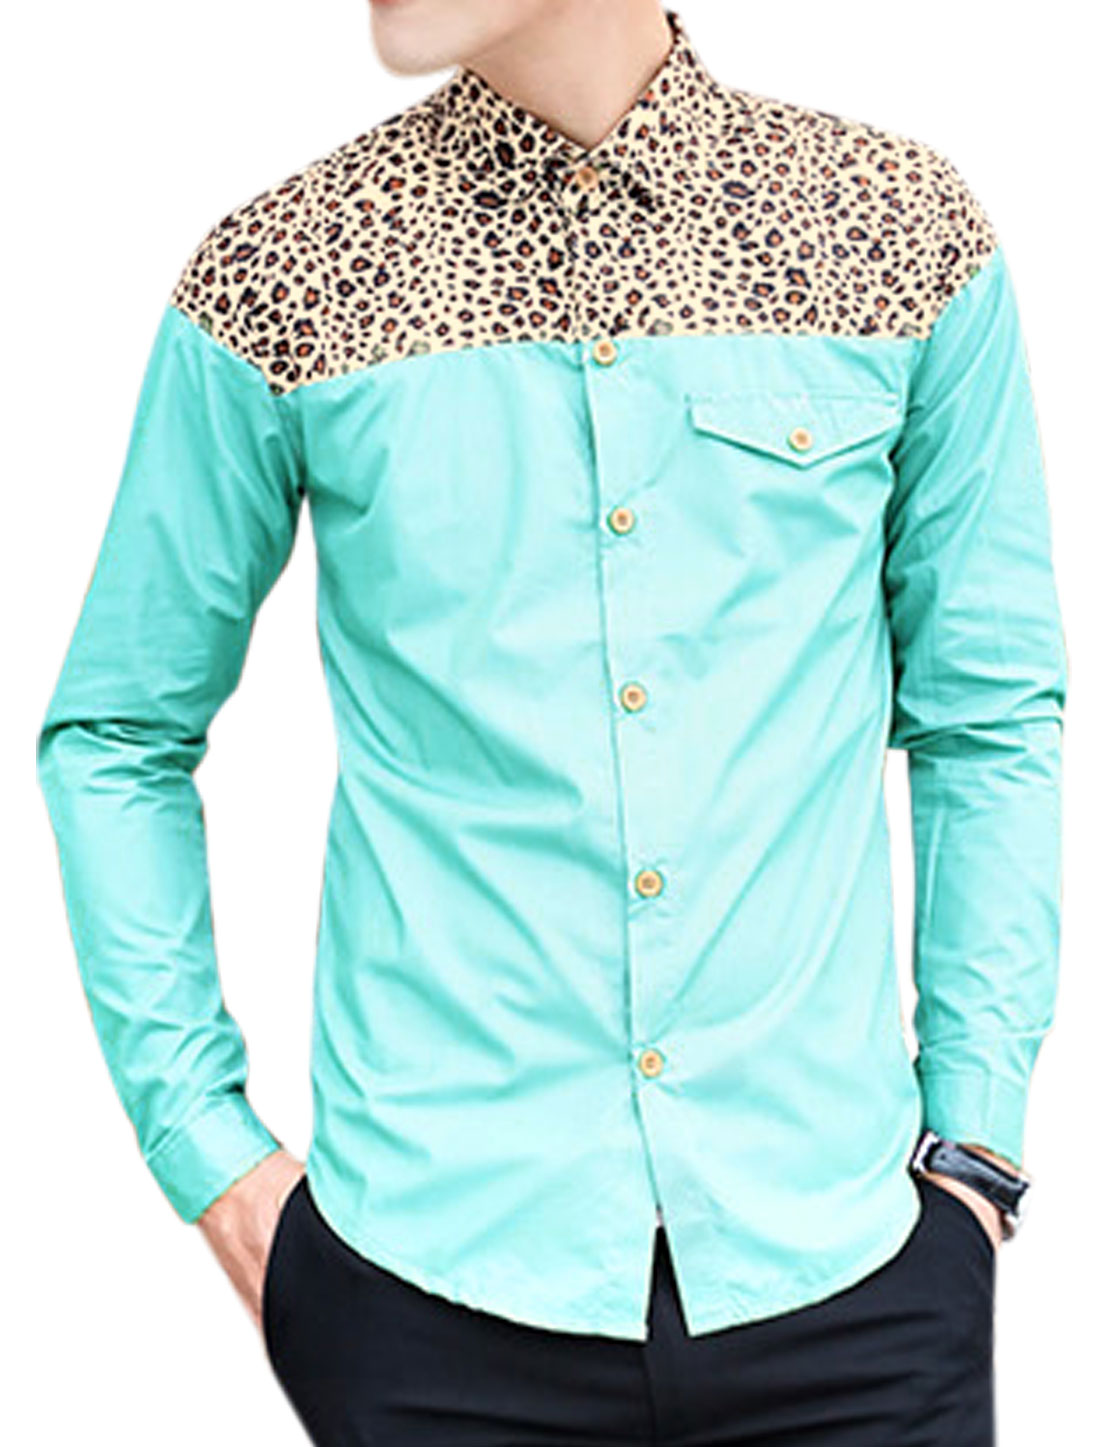 Men Leopard Panel Single Breasted Fashion Casual Shirt Baby Blue M